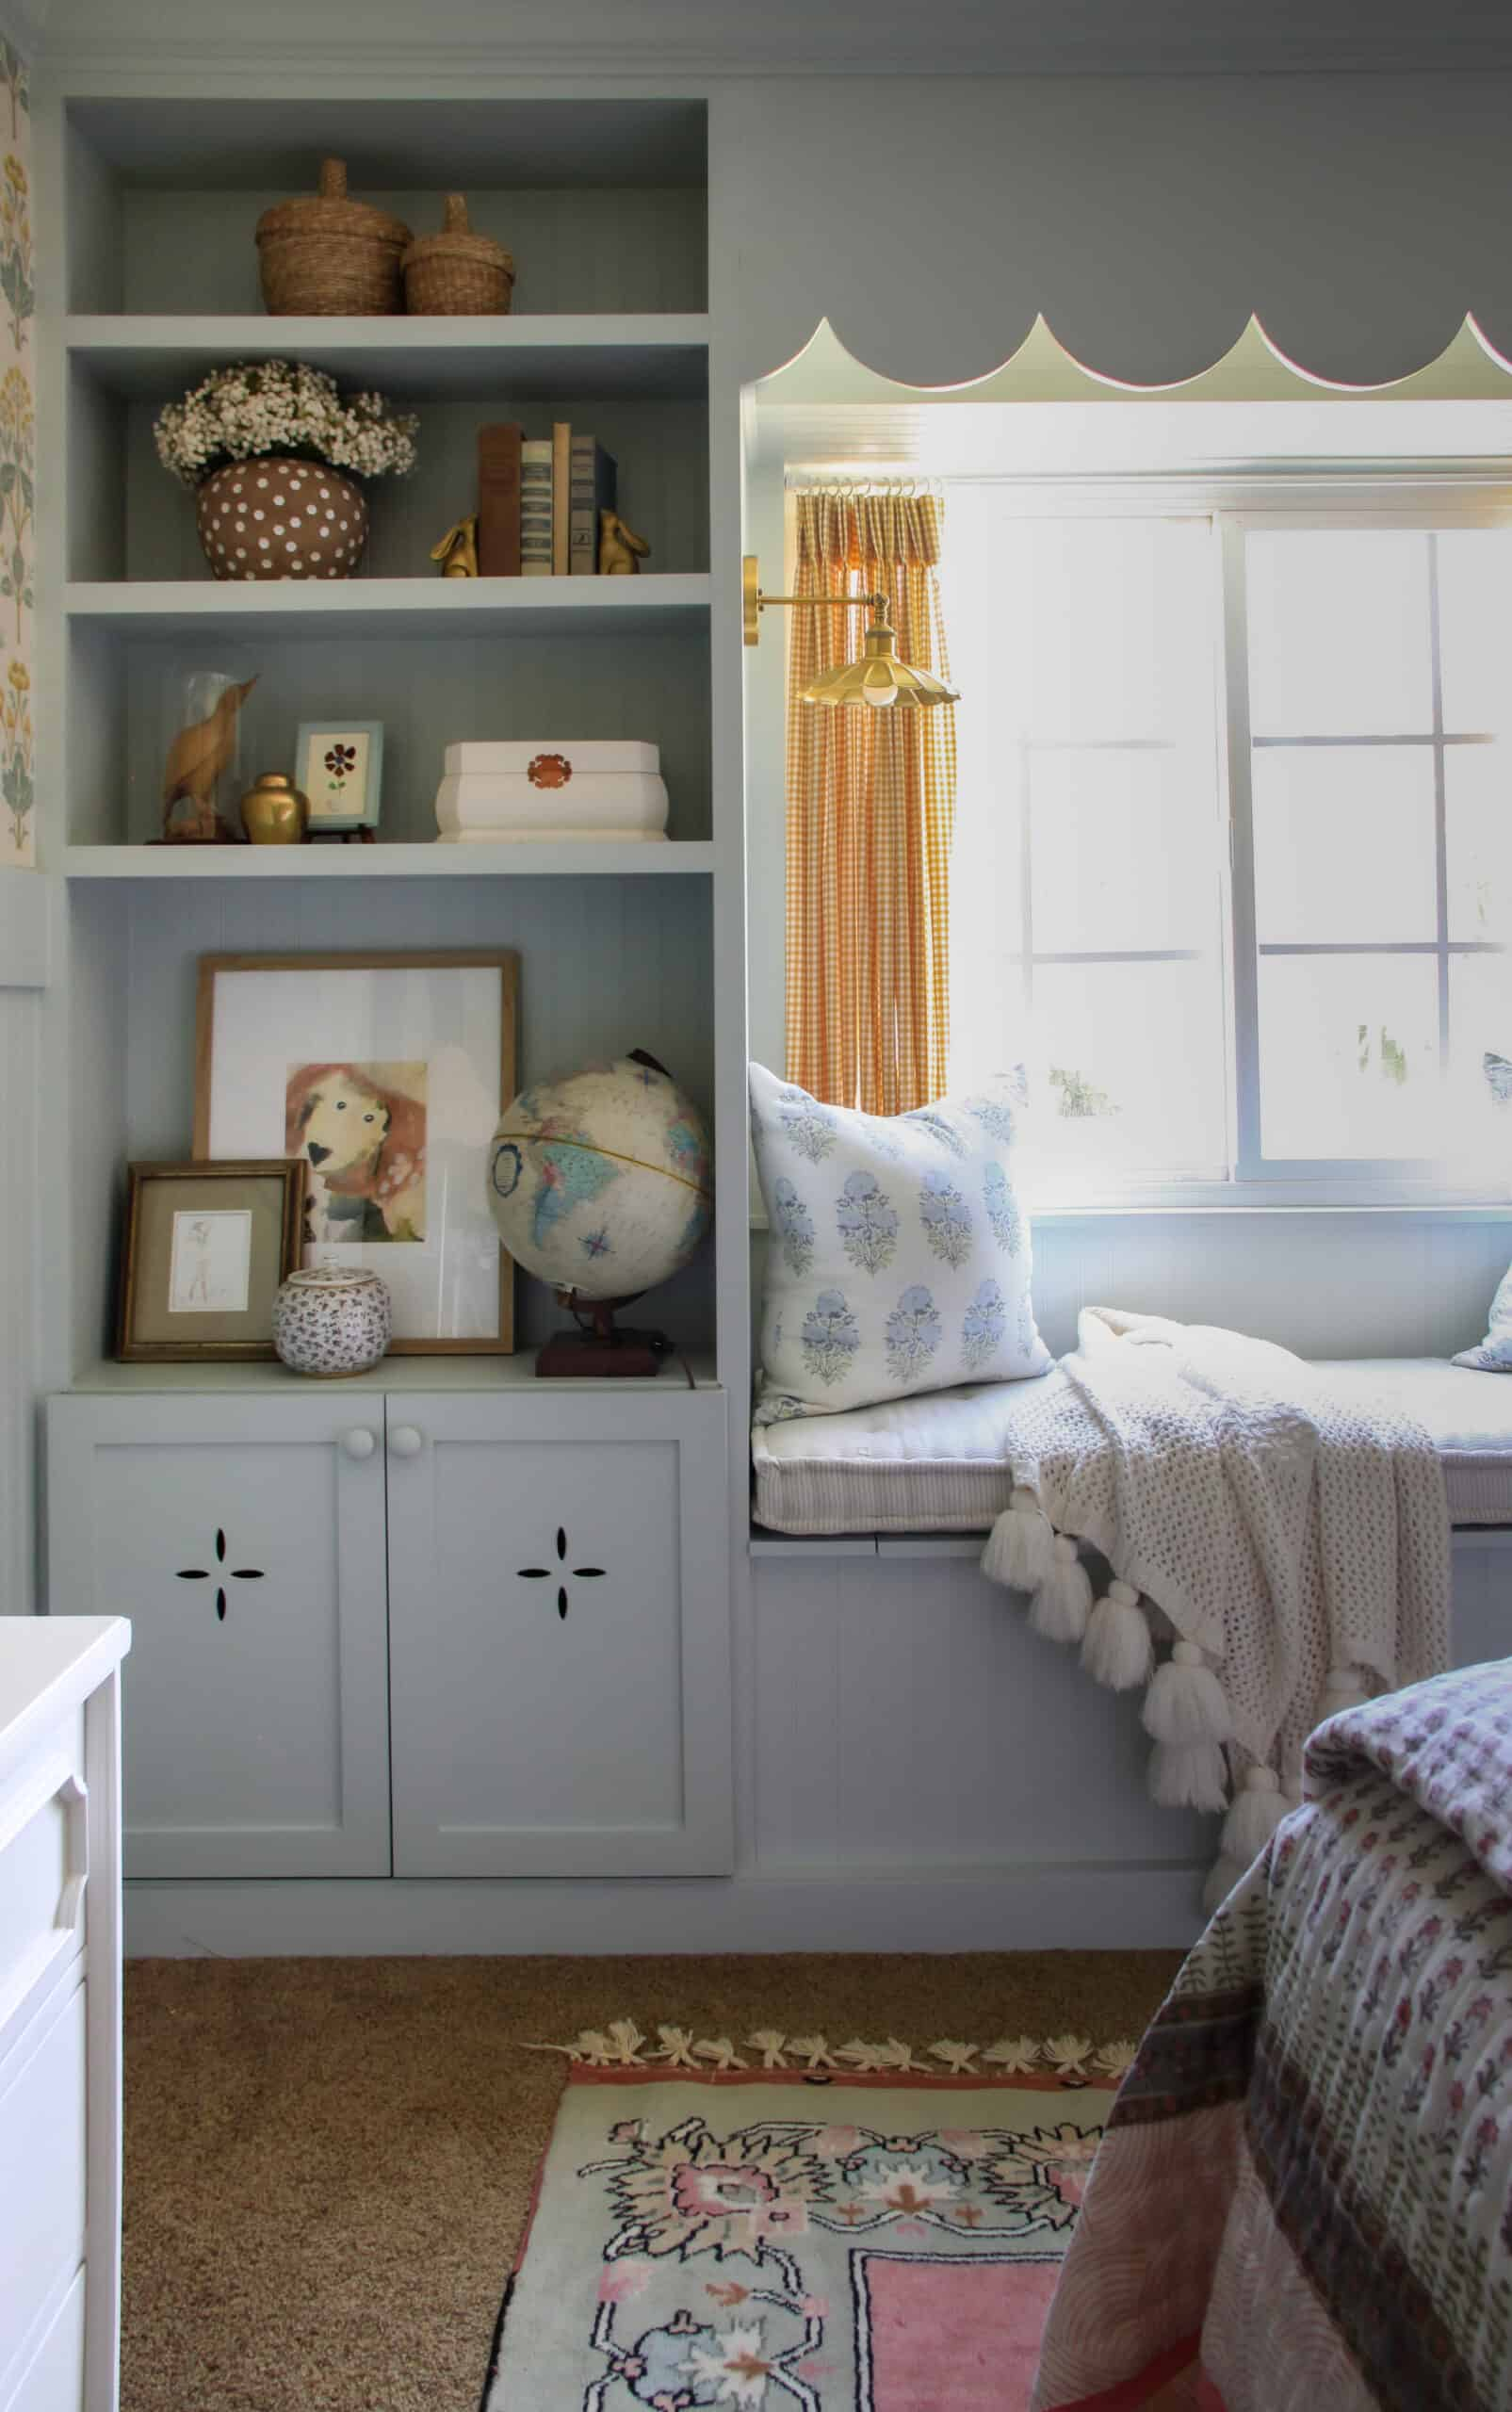 light blue built-in shelves with window seat